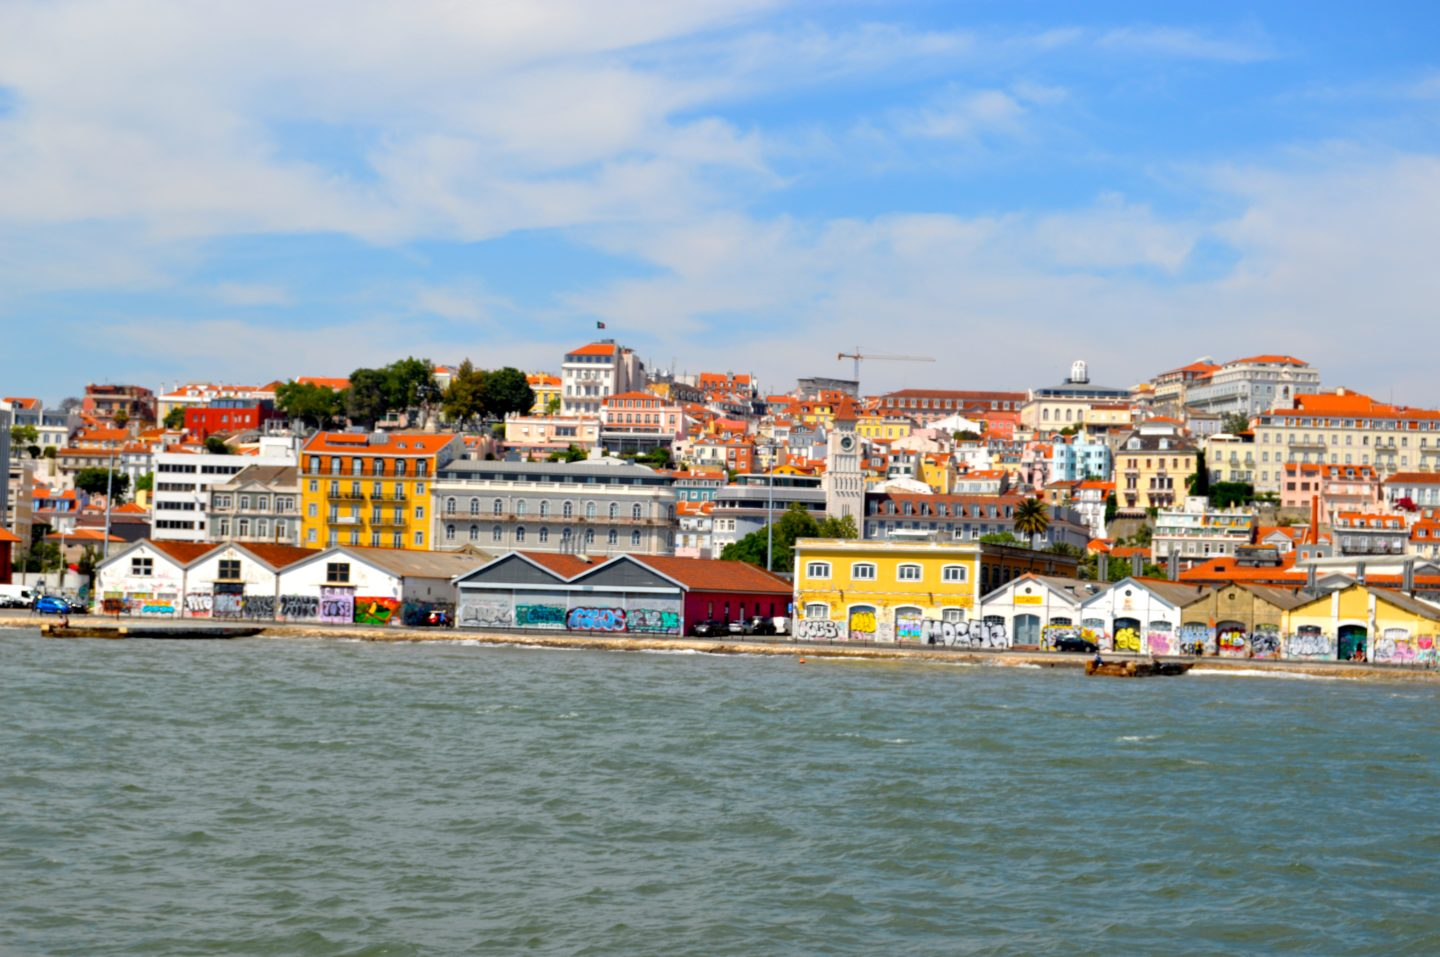 Views looking in at the city of Lisbon from the ferry